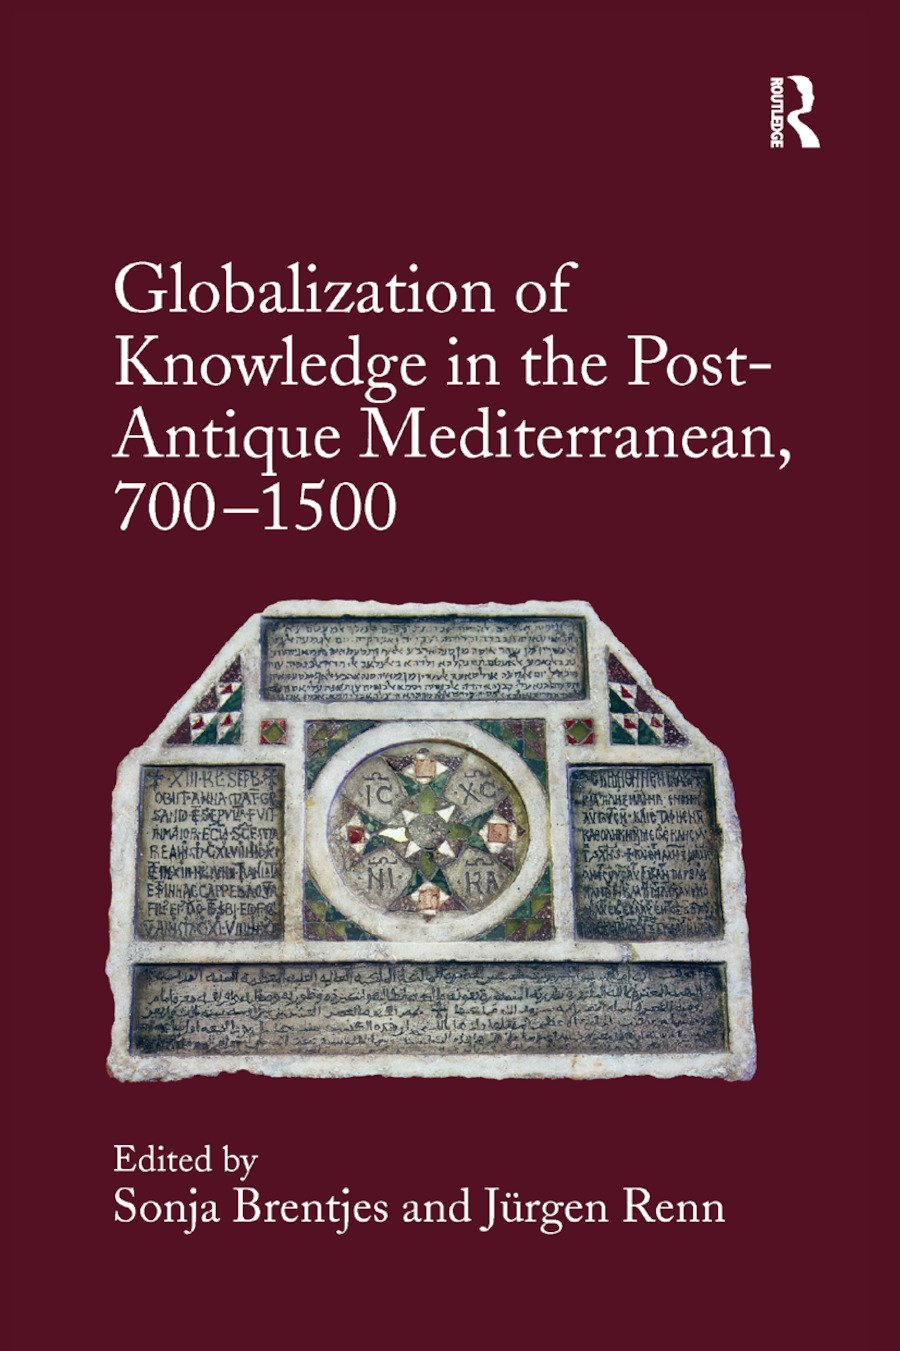 Globalization of Knowledge in the Post-Antique Mediterranean, 700-1500